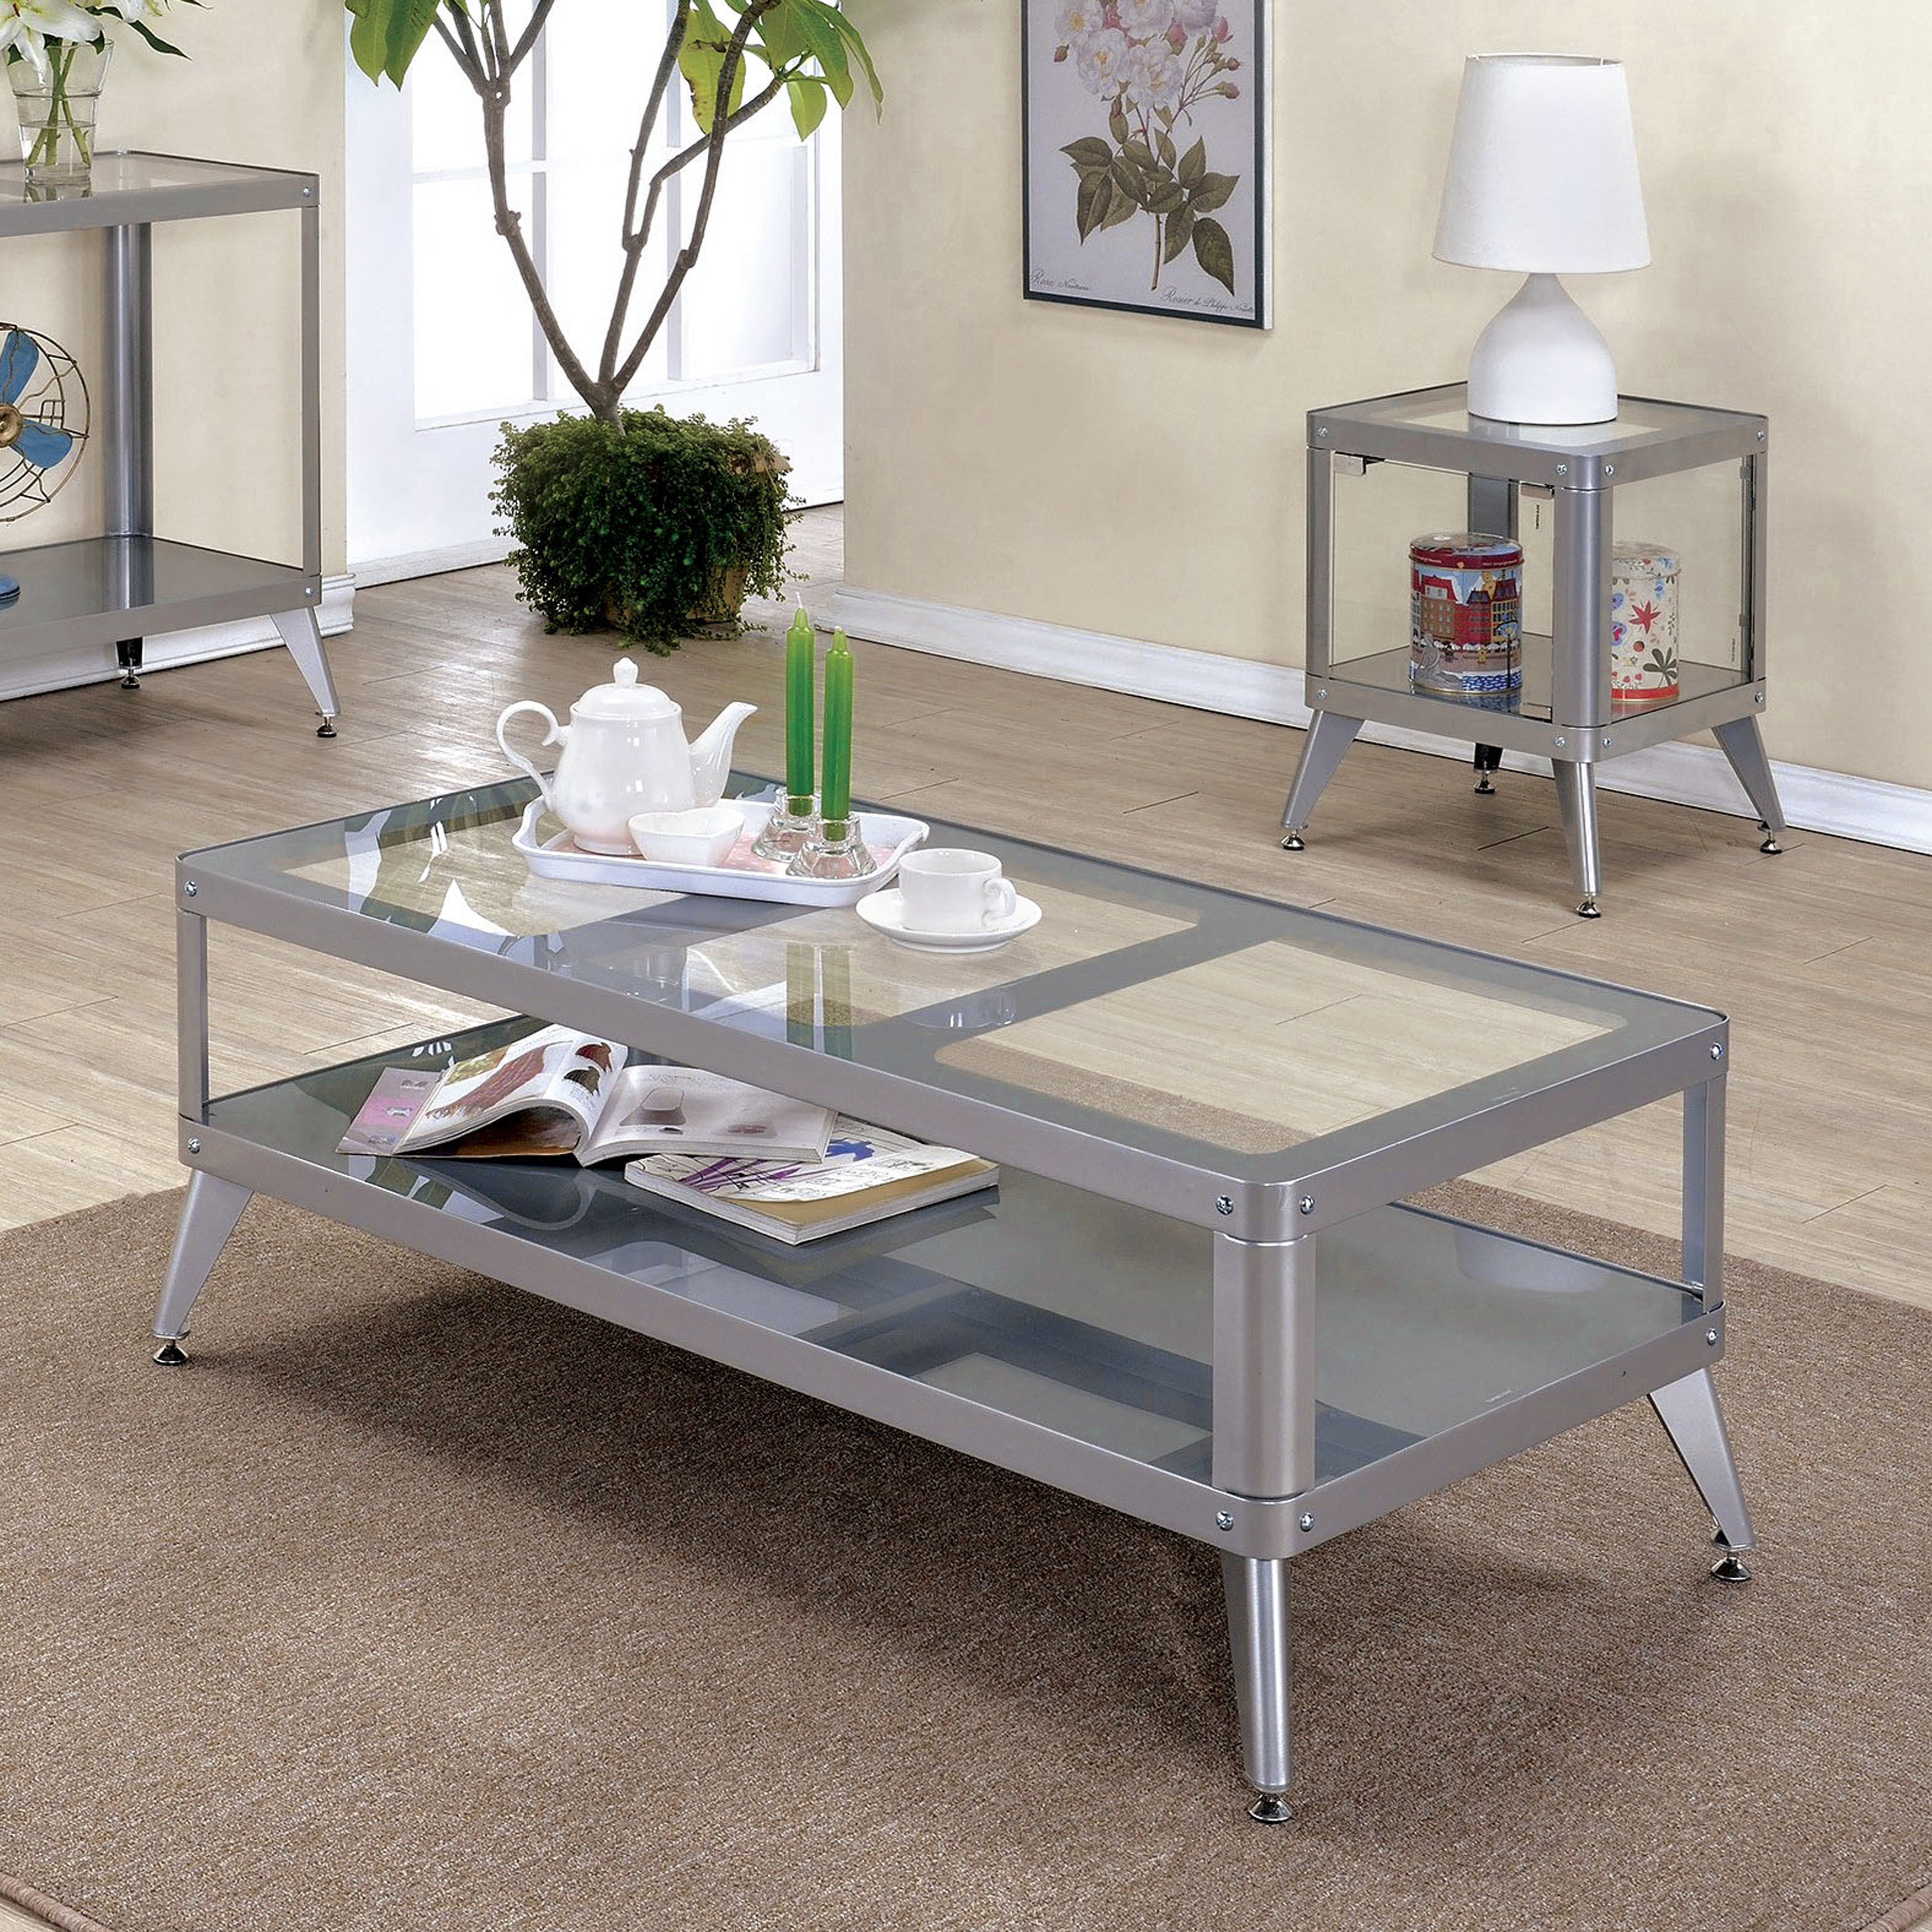 furniture america linden modern piece glass top metal accent table set with free shipping today hampton bay pembrey cube coffee garden battery operated indoor lamps marble stone